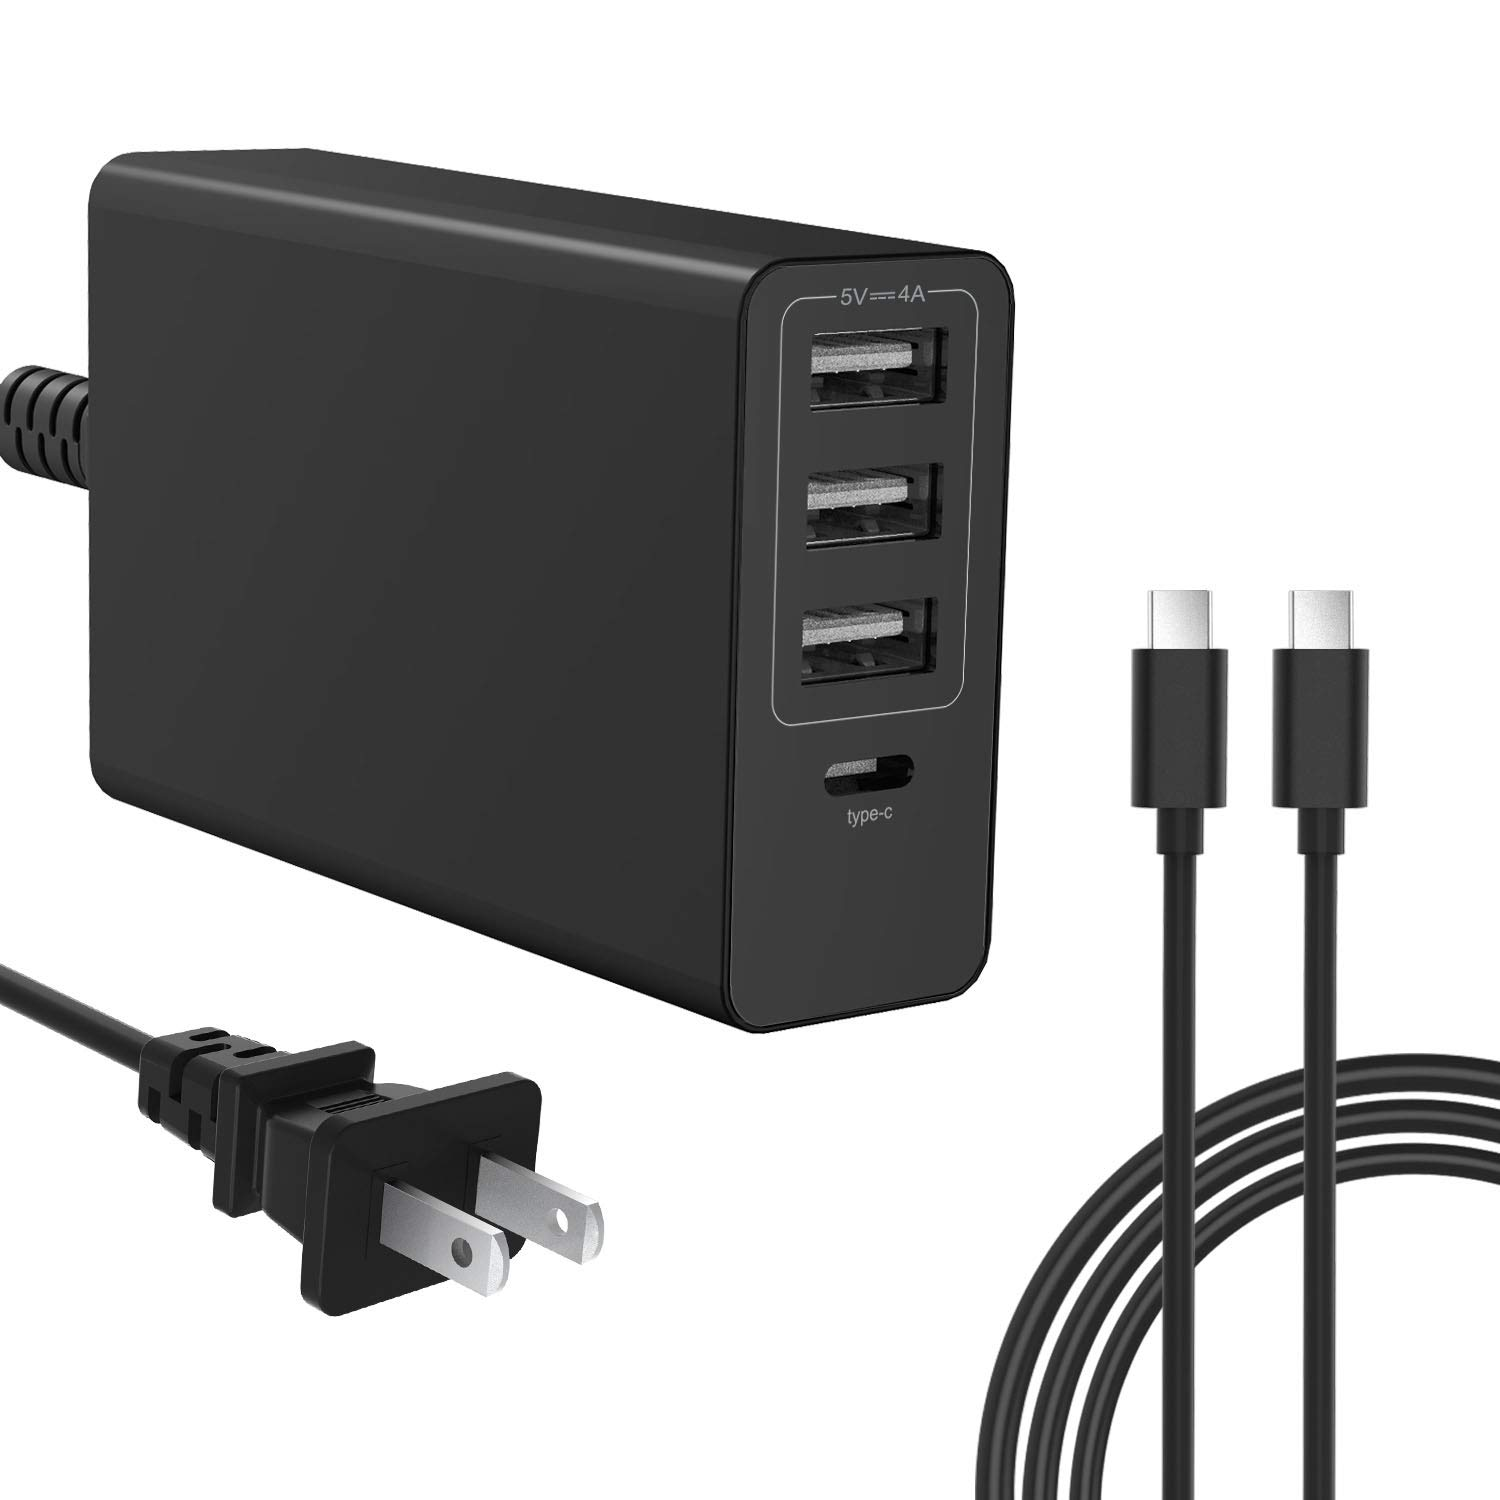 61w USB C Charger for MacBook Pro 13 inch 2016 2017 2018, Type C PD Wall Charger Power Adapter for Laptop/Ipad Pro/Phone/Nexus 5X 6P/ Samsung Galaxy S9/ Google Pixel 2XL/ Lg Stylo 4 Etc (Black)